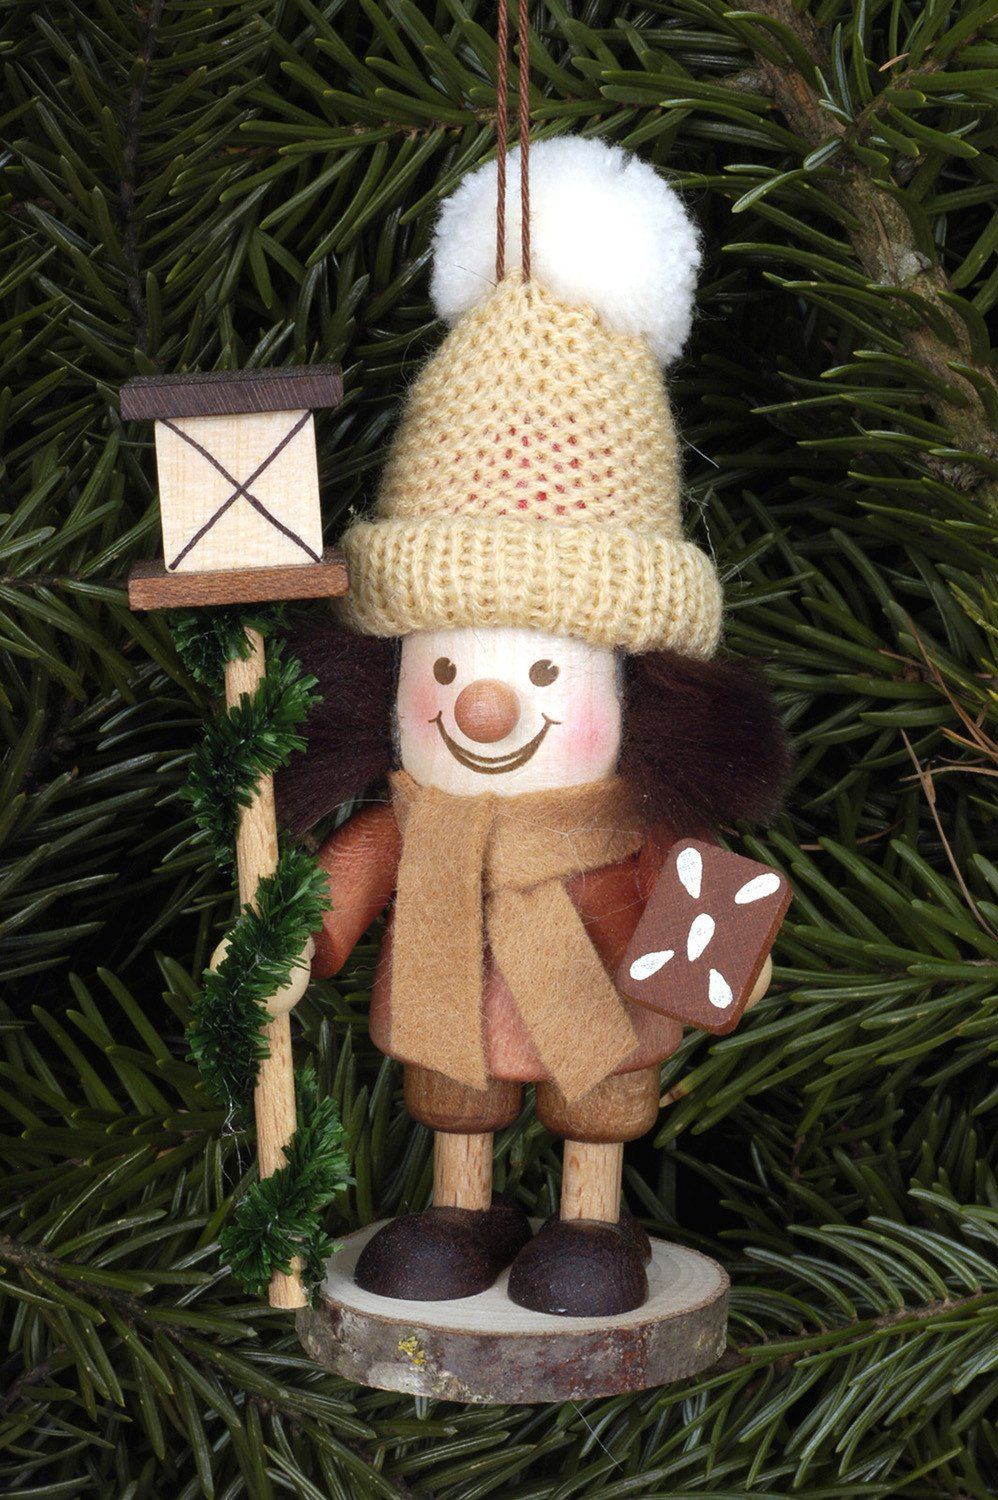 Large gnome Christmas tree decoration - Carol singer